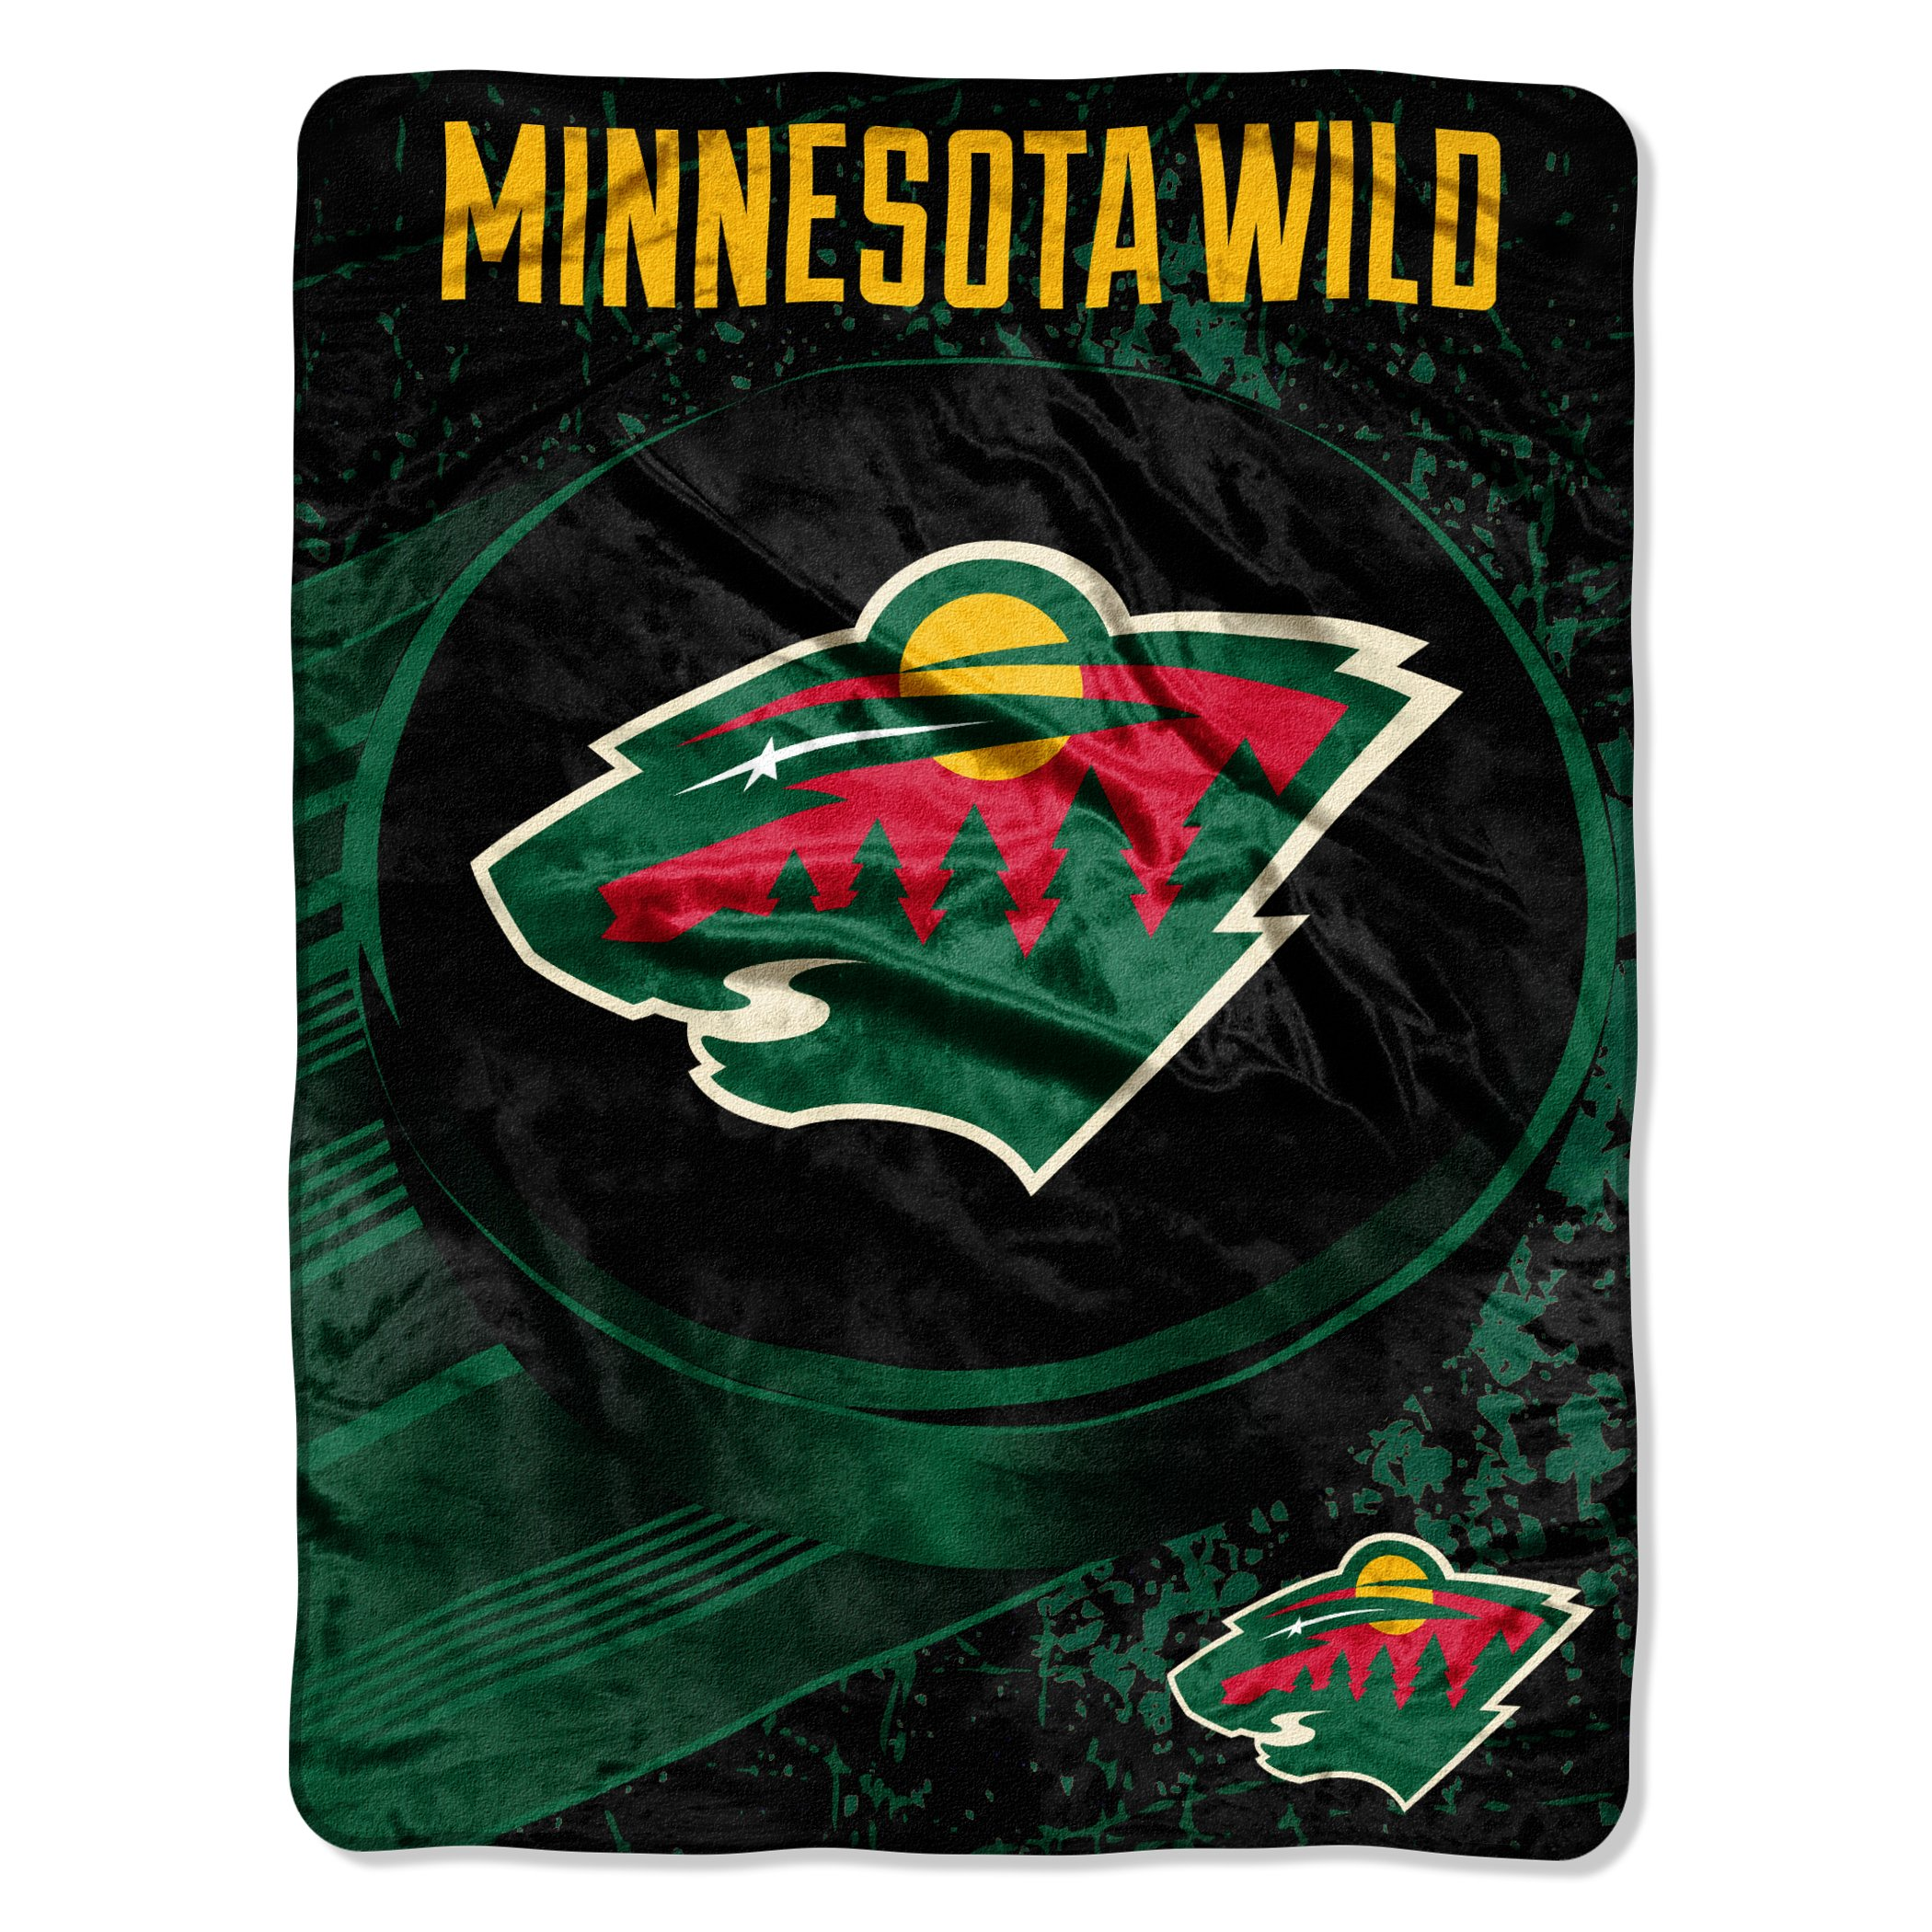 Buy Minnesota Wild Now!